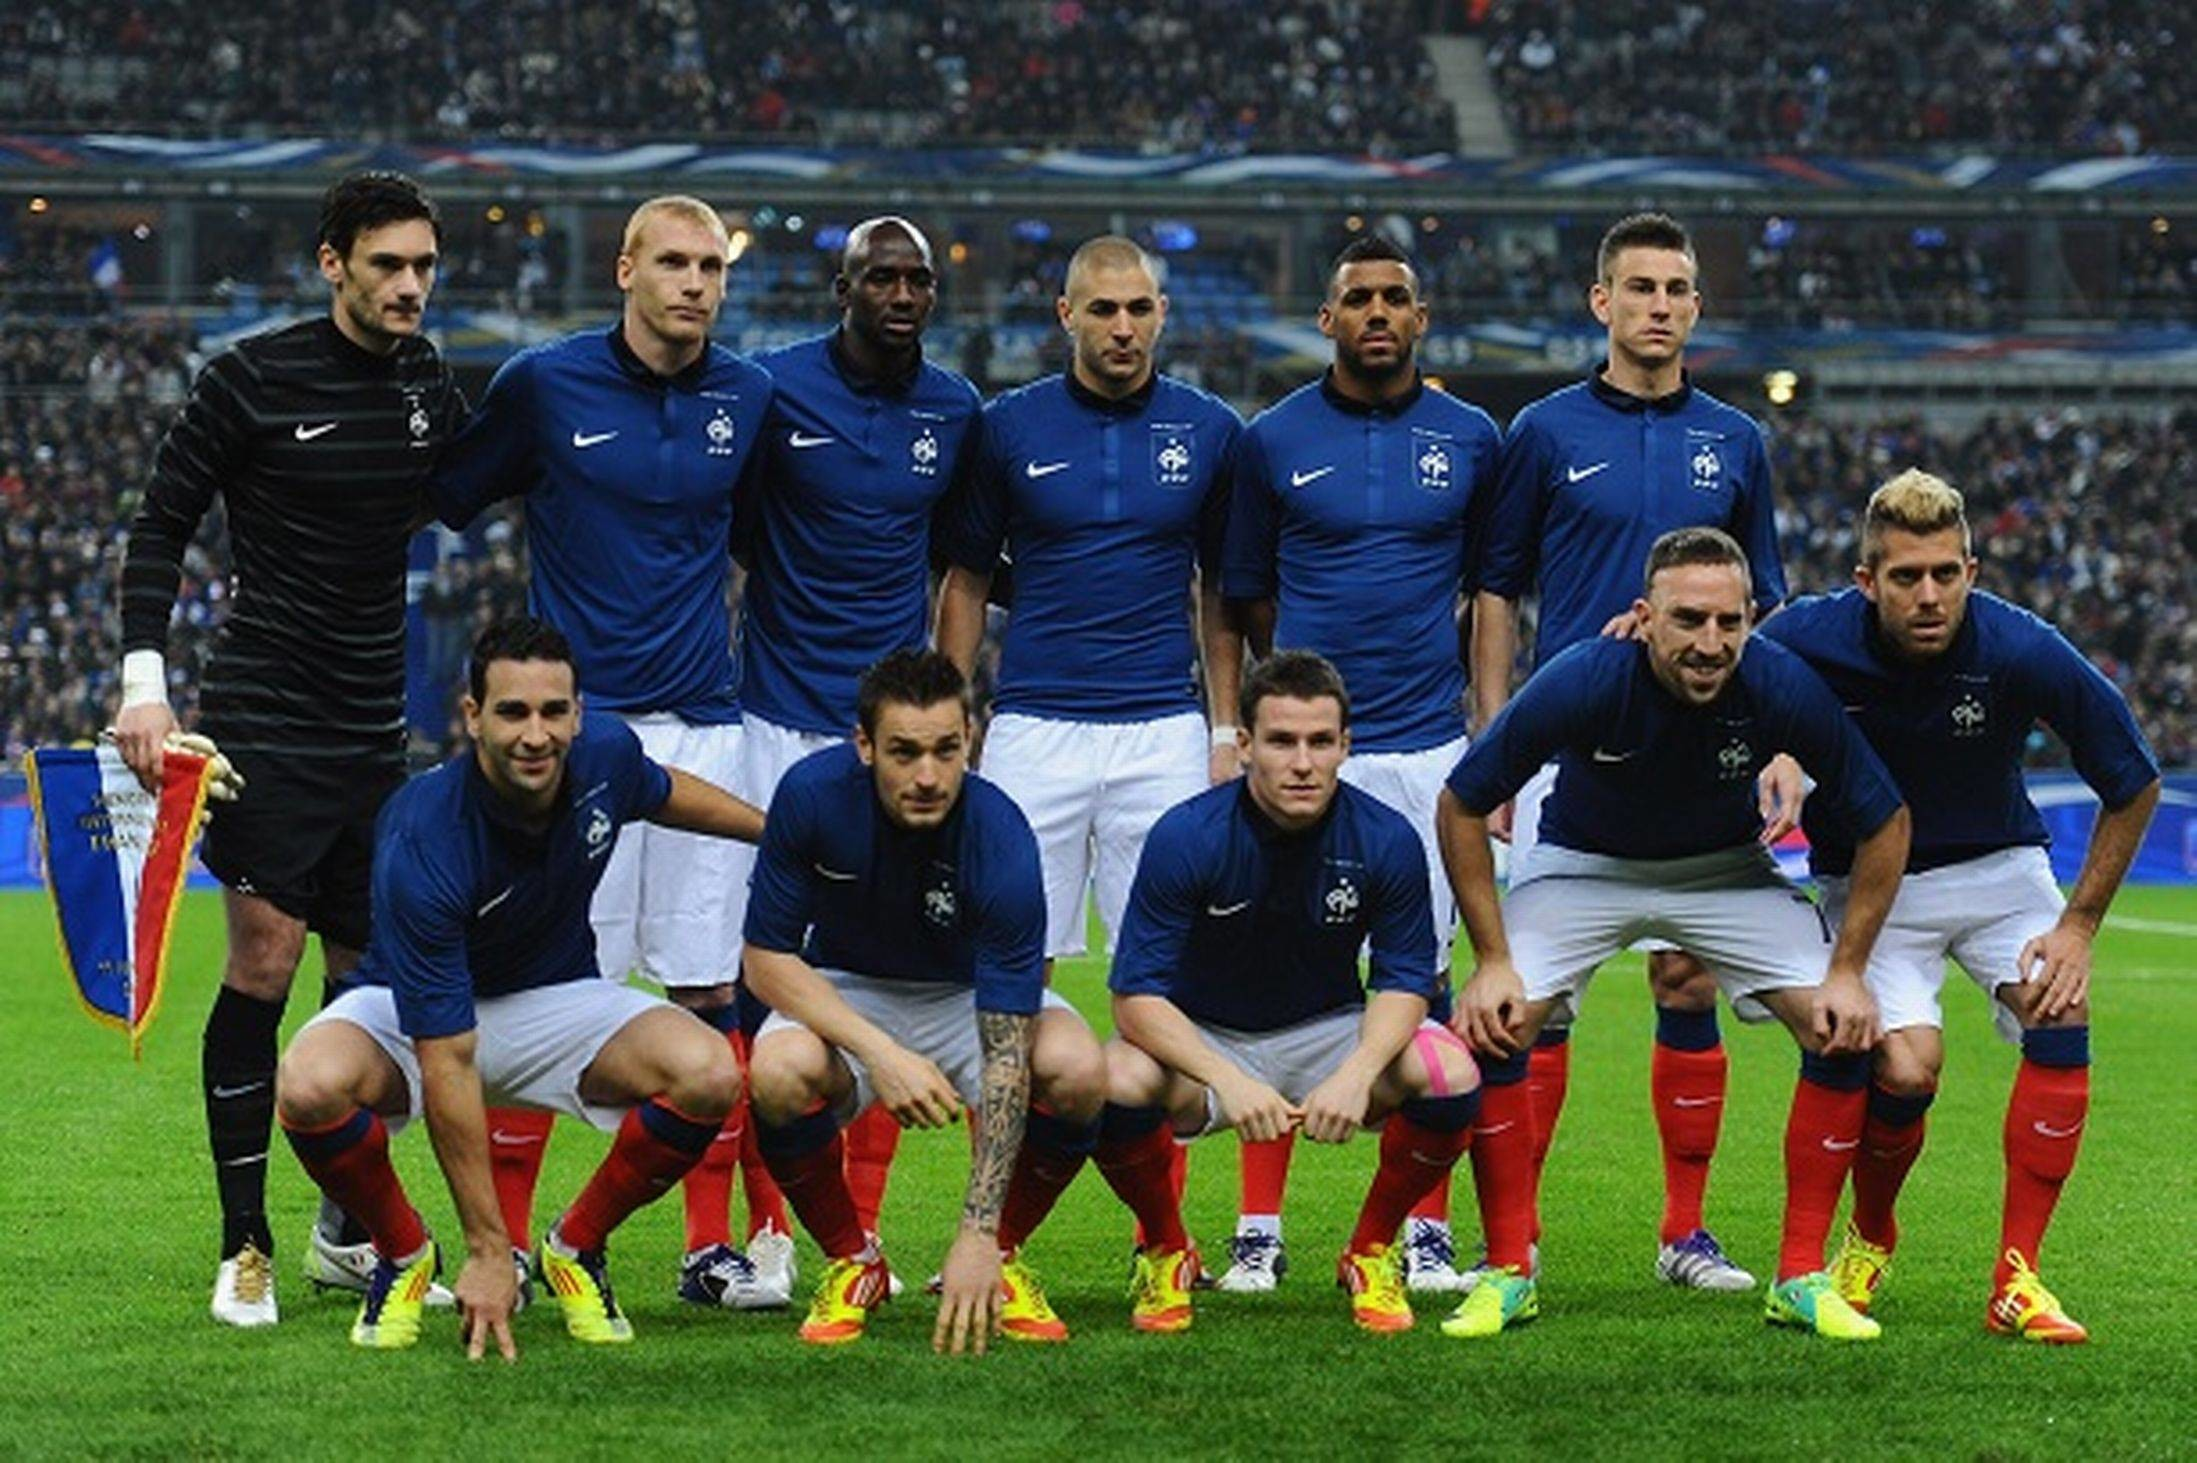 France National football Team 2014 Wallpapers